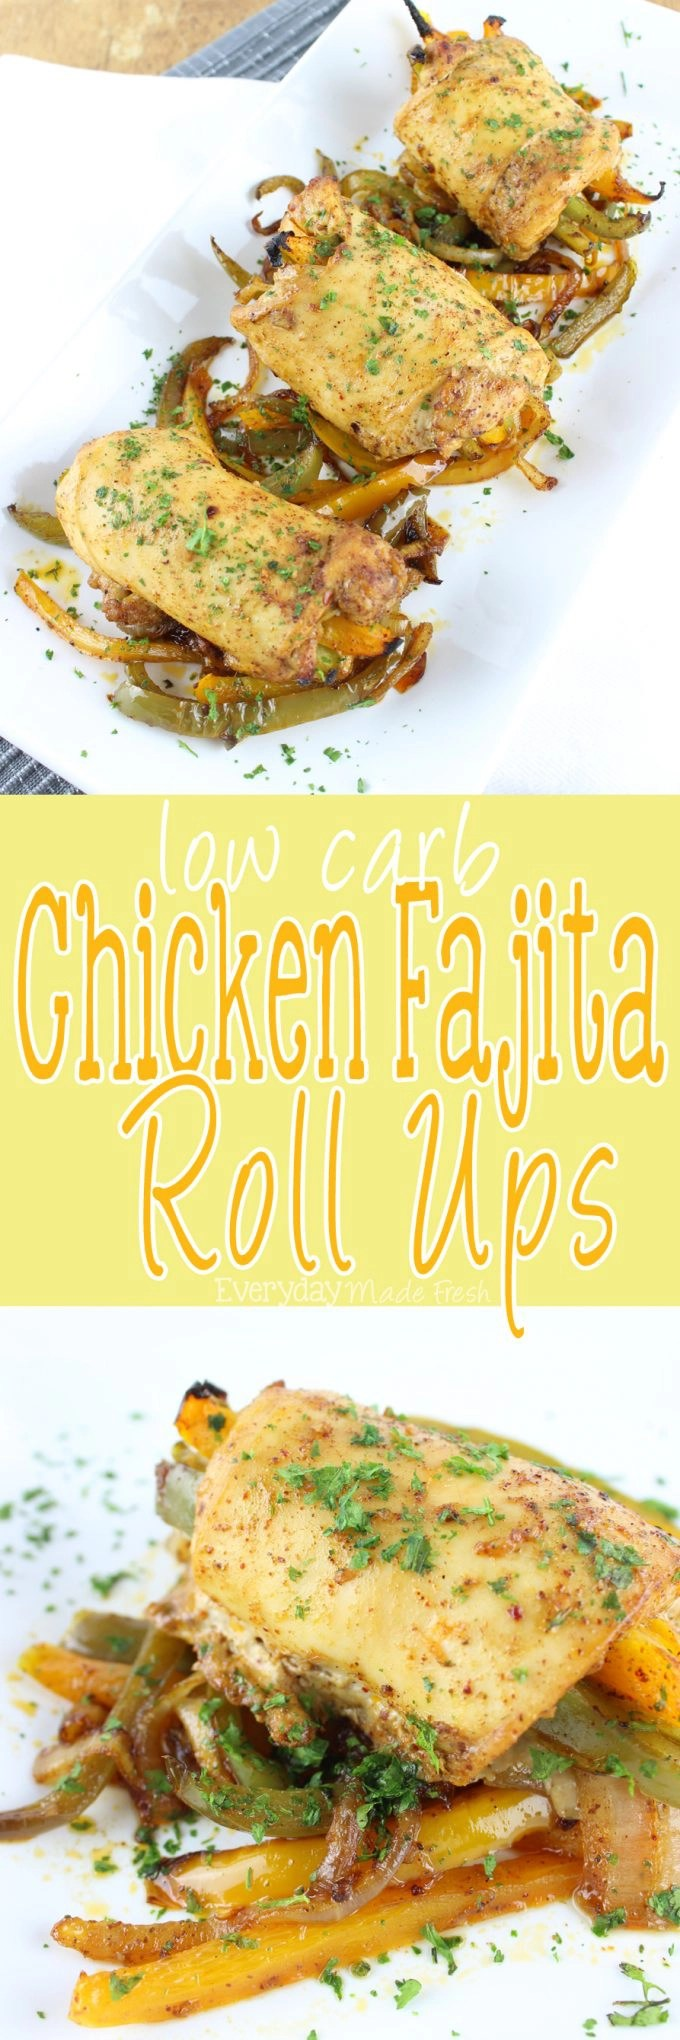 Skip the shell, and go with these Low Carb Chicken Fajita Roll Ups! Easy to make, and super tasty!   EverydayMadeFresh.com